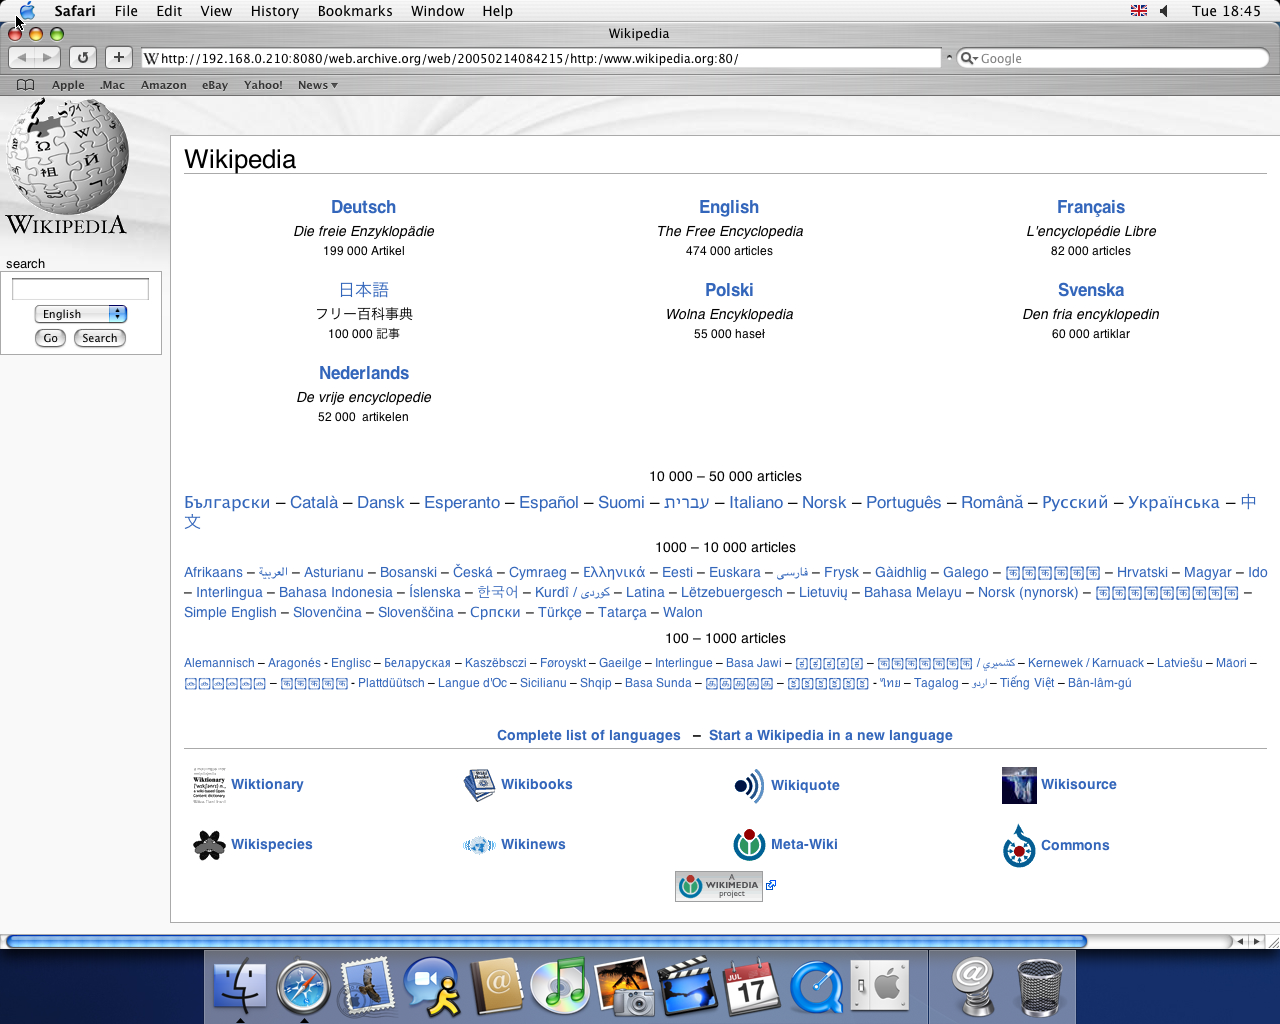 OS X 10.3 PPC with Safari 1.1 displaying a page from Wikipedia.org archived at February 14, 2005 at 08:42:15